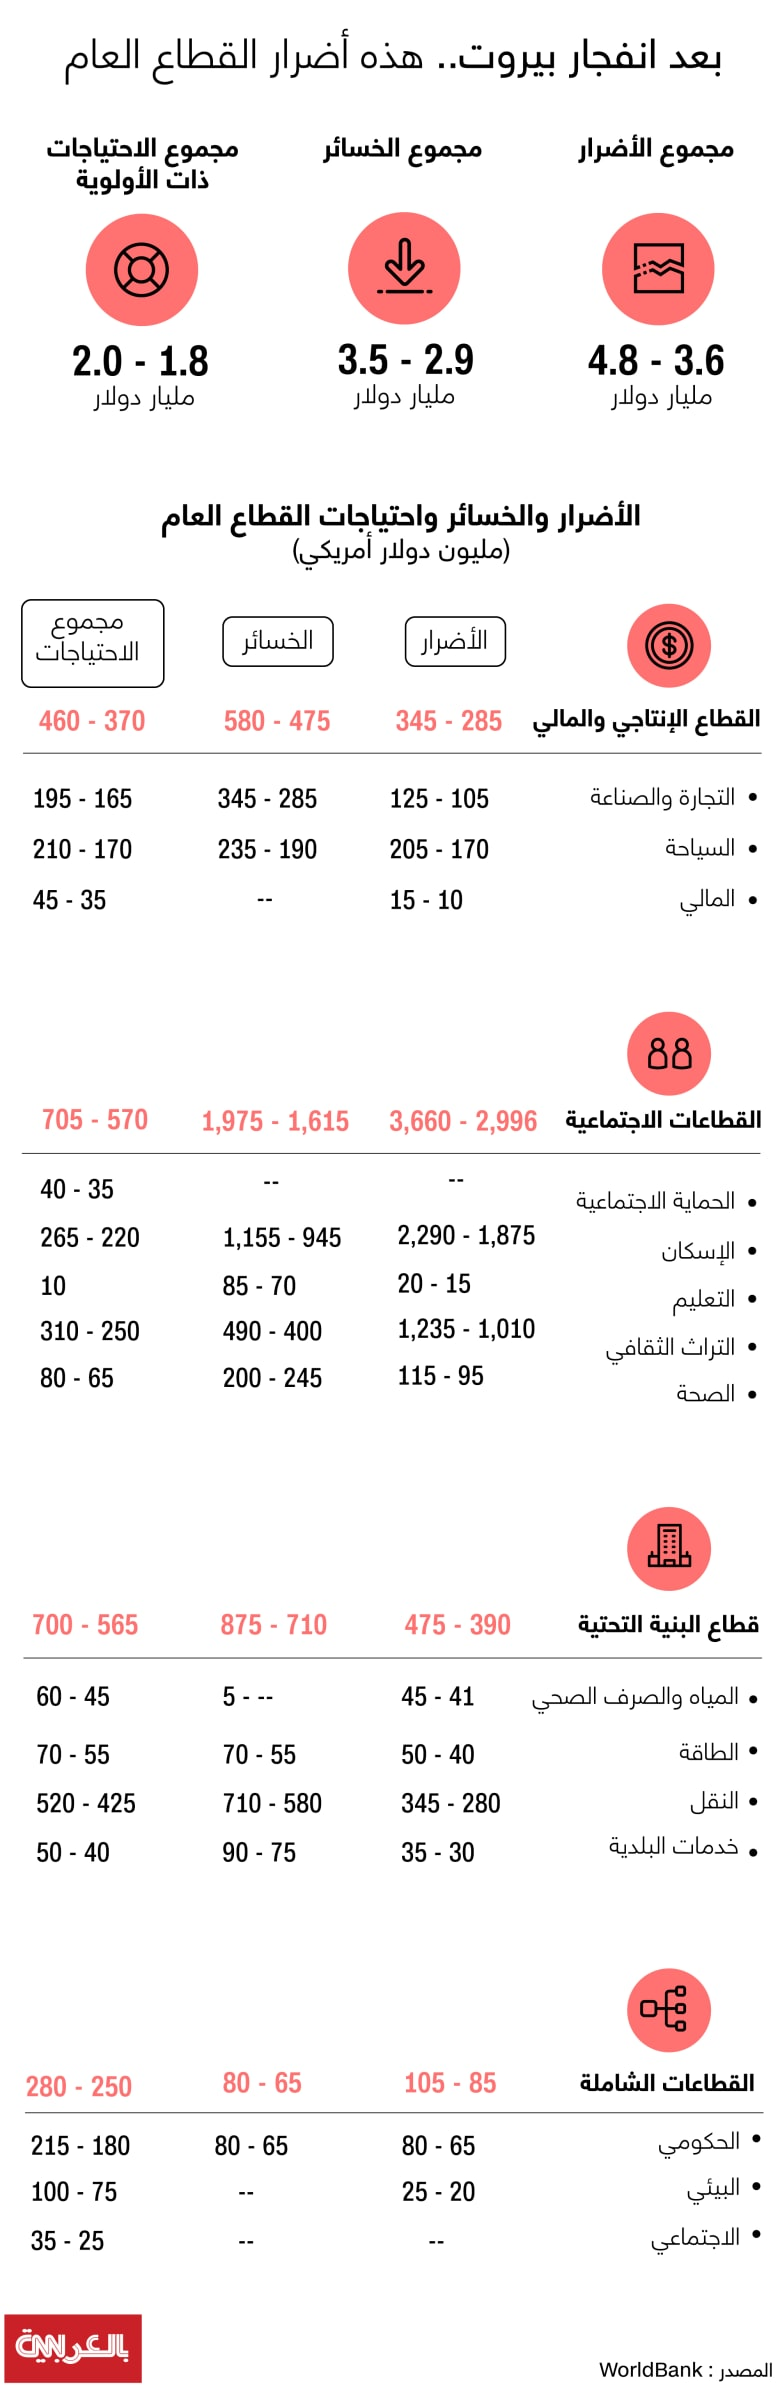 beirut-loss-damages-needs-sector